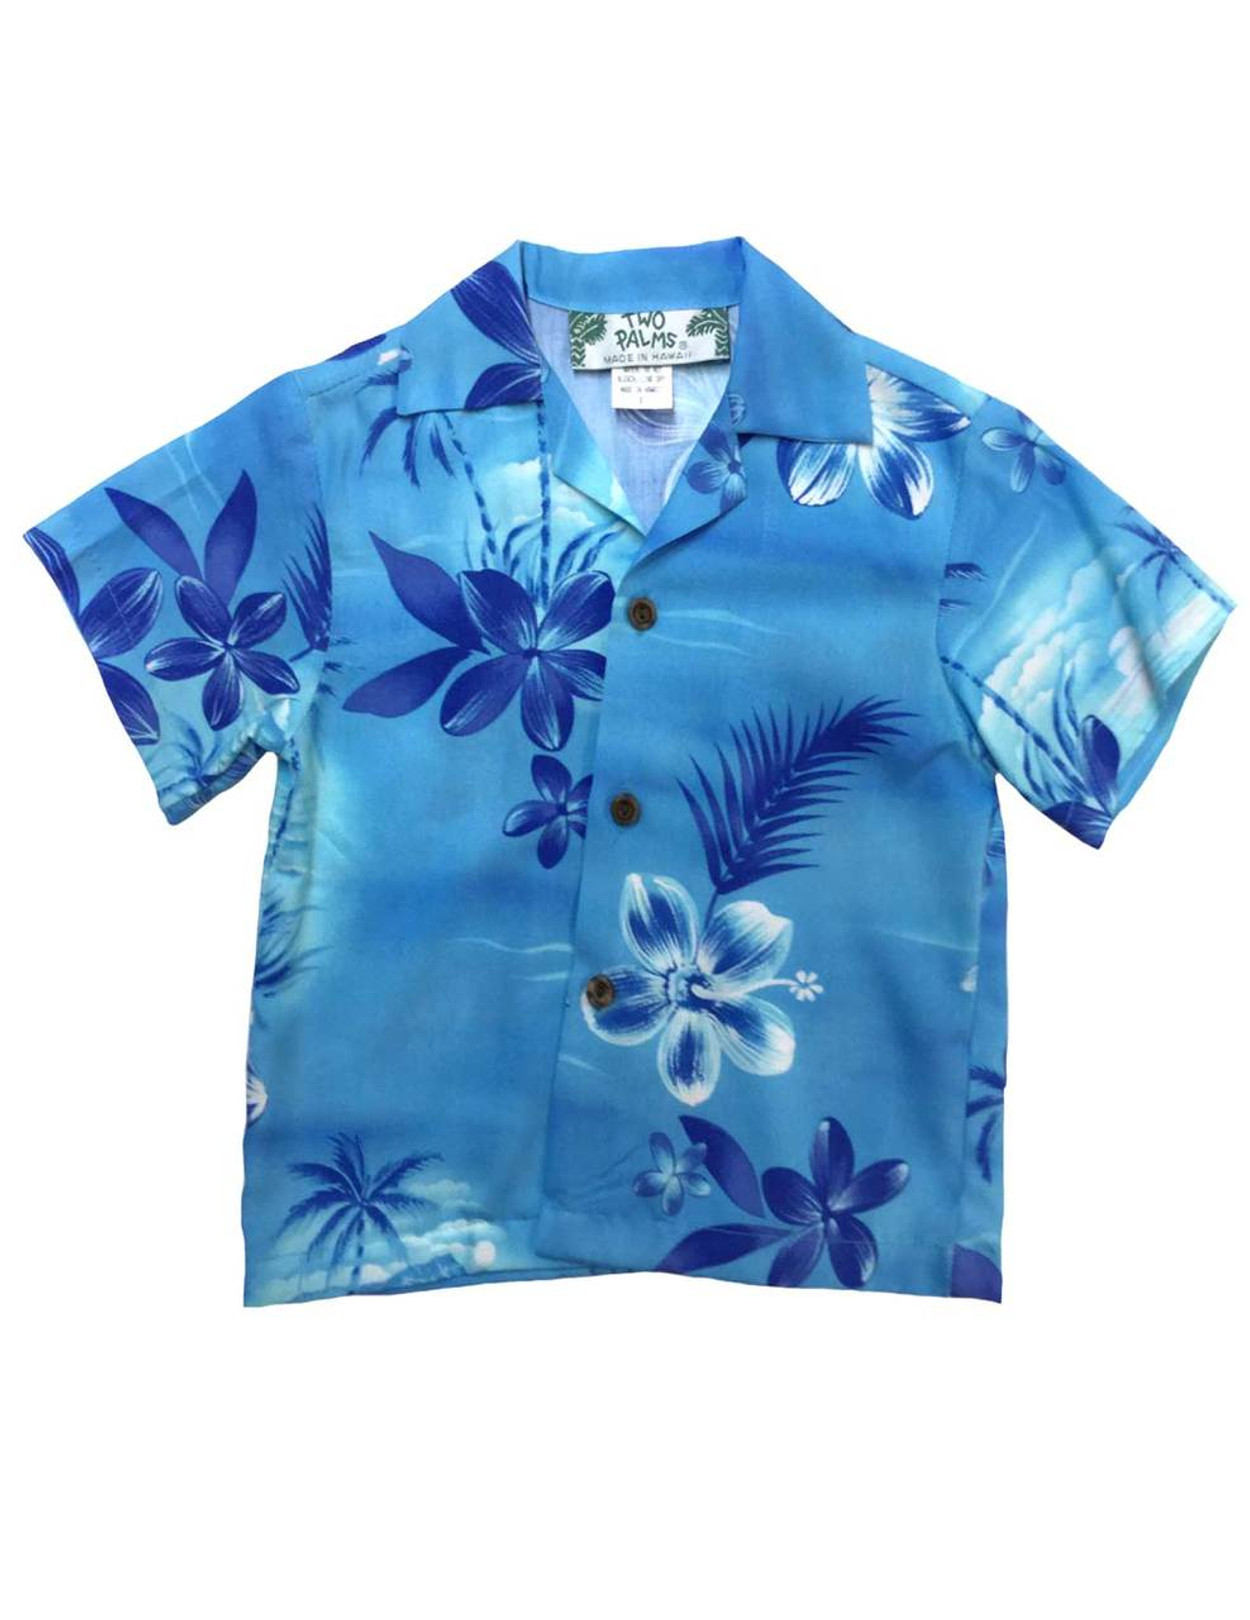 26235204 Boys Aloha Shirt Moonlight Scenic 100% Rayon Fabric Coconut Shell Buttons  Relaxed Fit, No